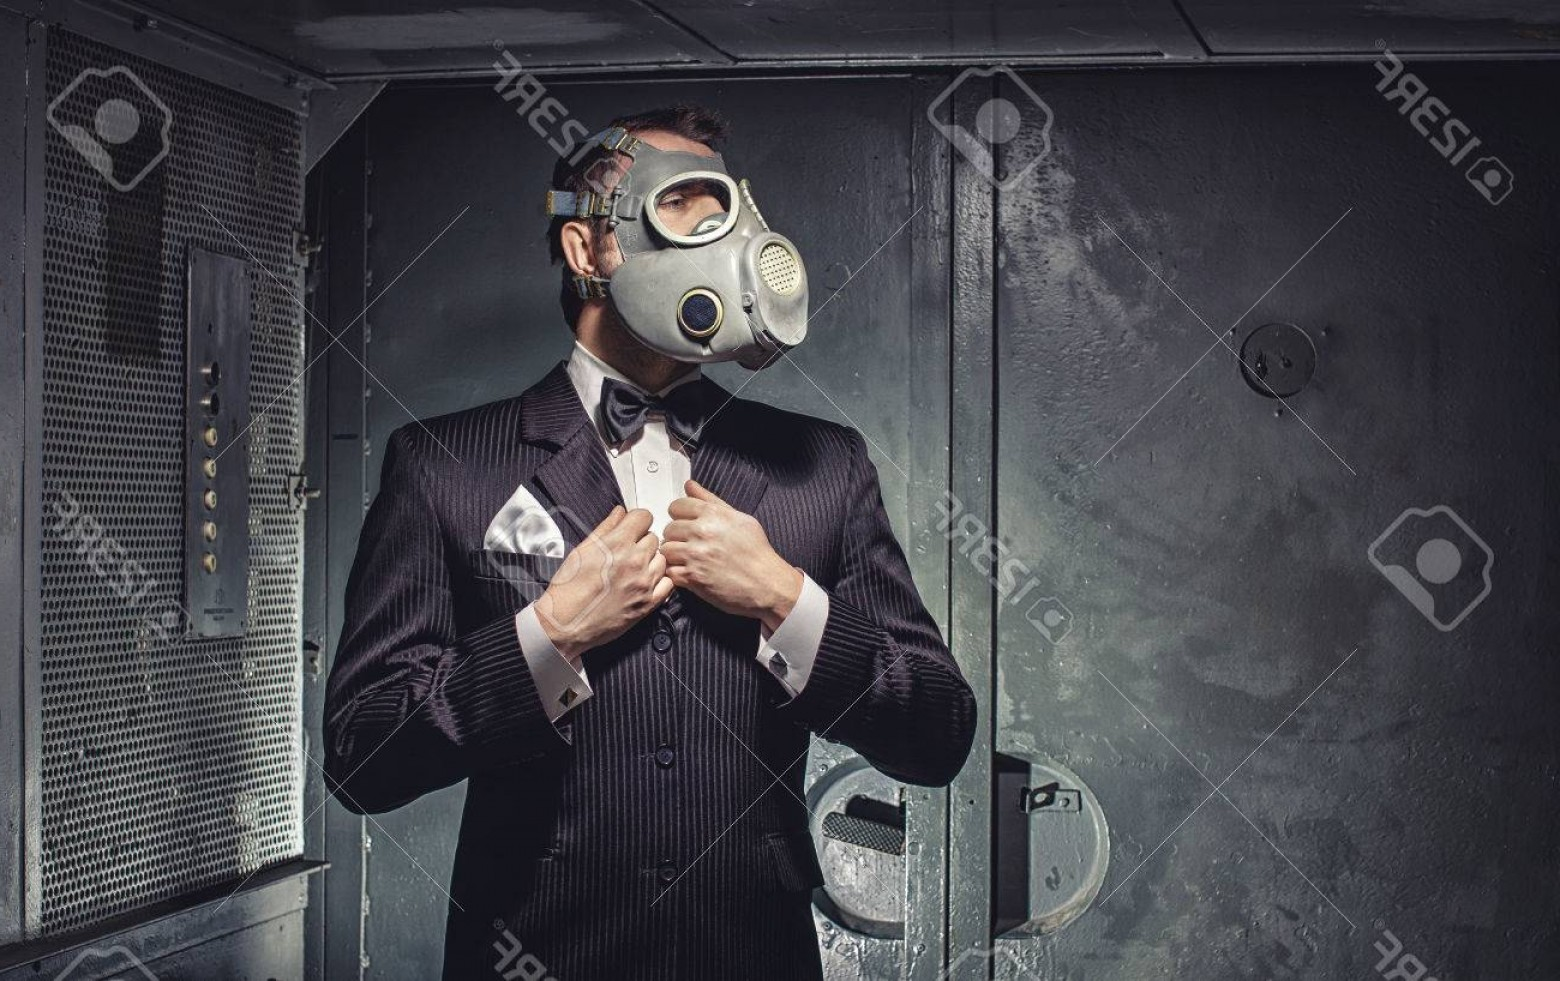 Gas Mask Suit And Tie Vector: Photoman In Gas Mask And Suit Standing In Old Elevator Secret Agent Terrorist Or Businessman Of Apocalyps